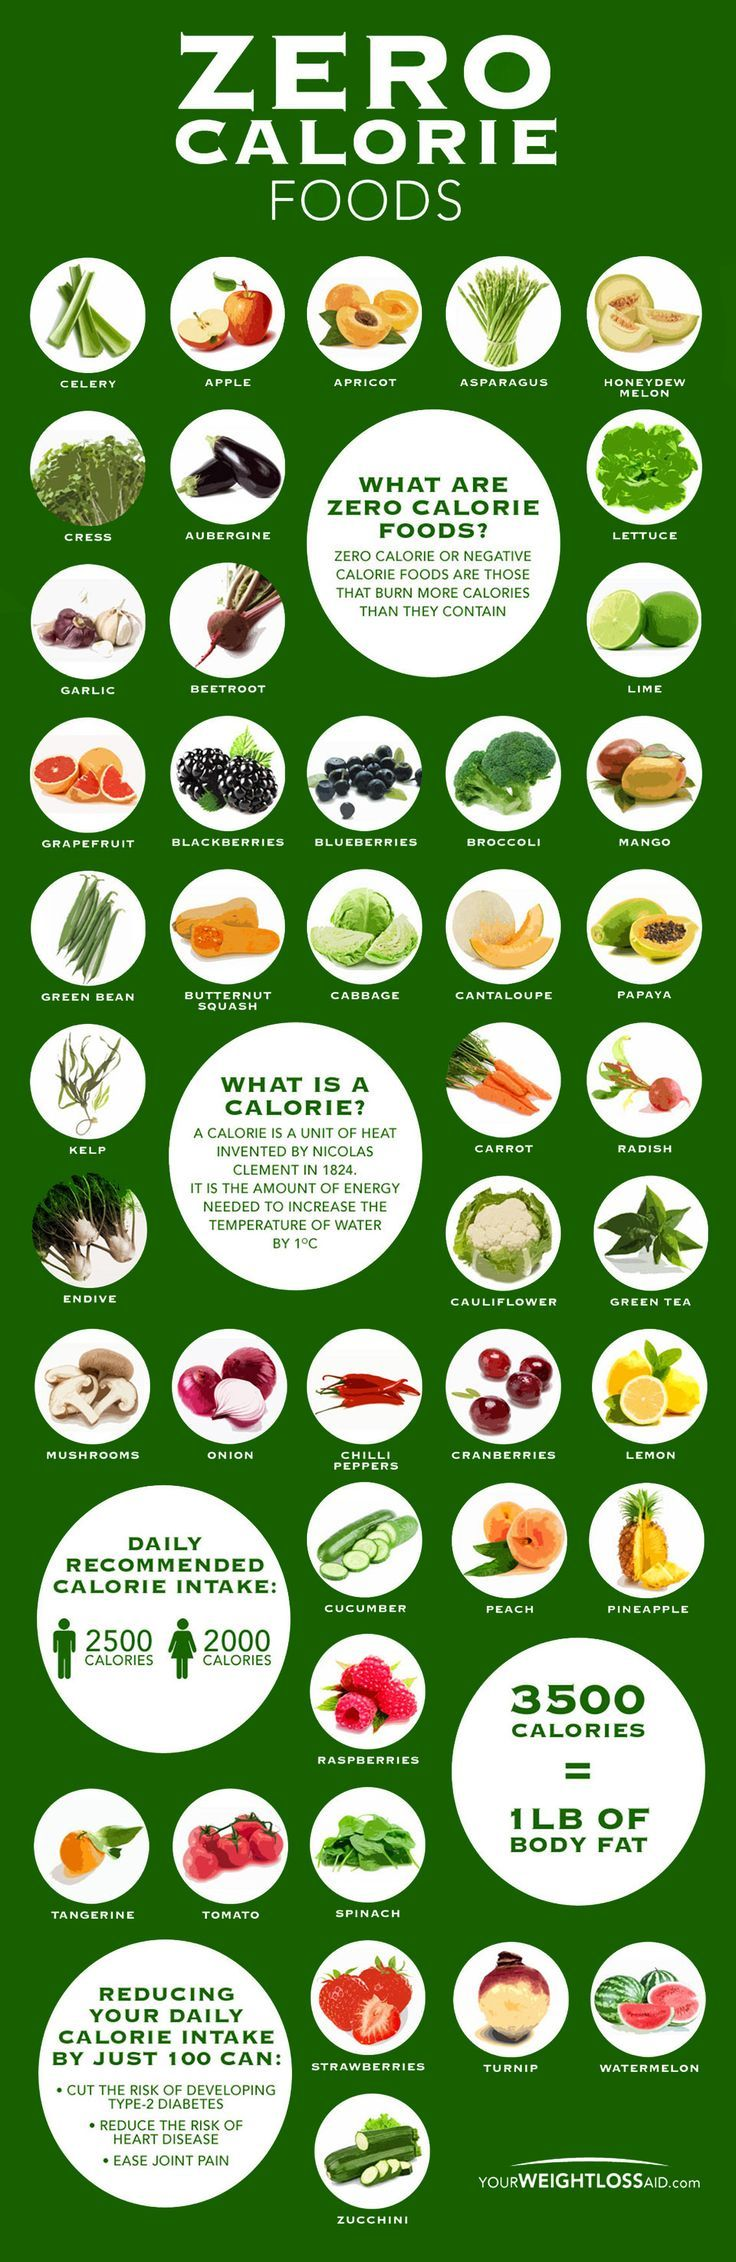 Zero calorie food chart topic diet weight loss paleo nutrition fruits vegetables vegetarian healthy eating also infographic health pinterest rh